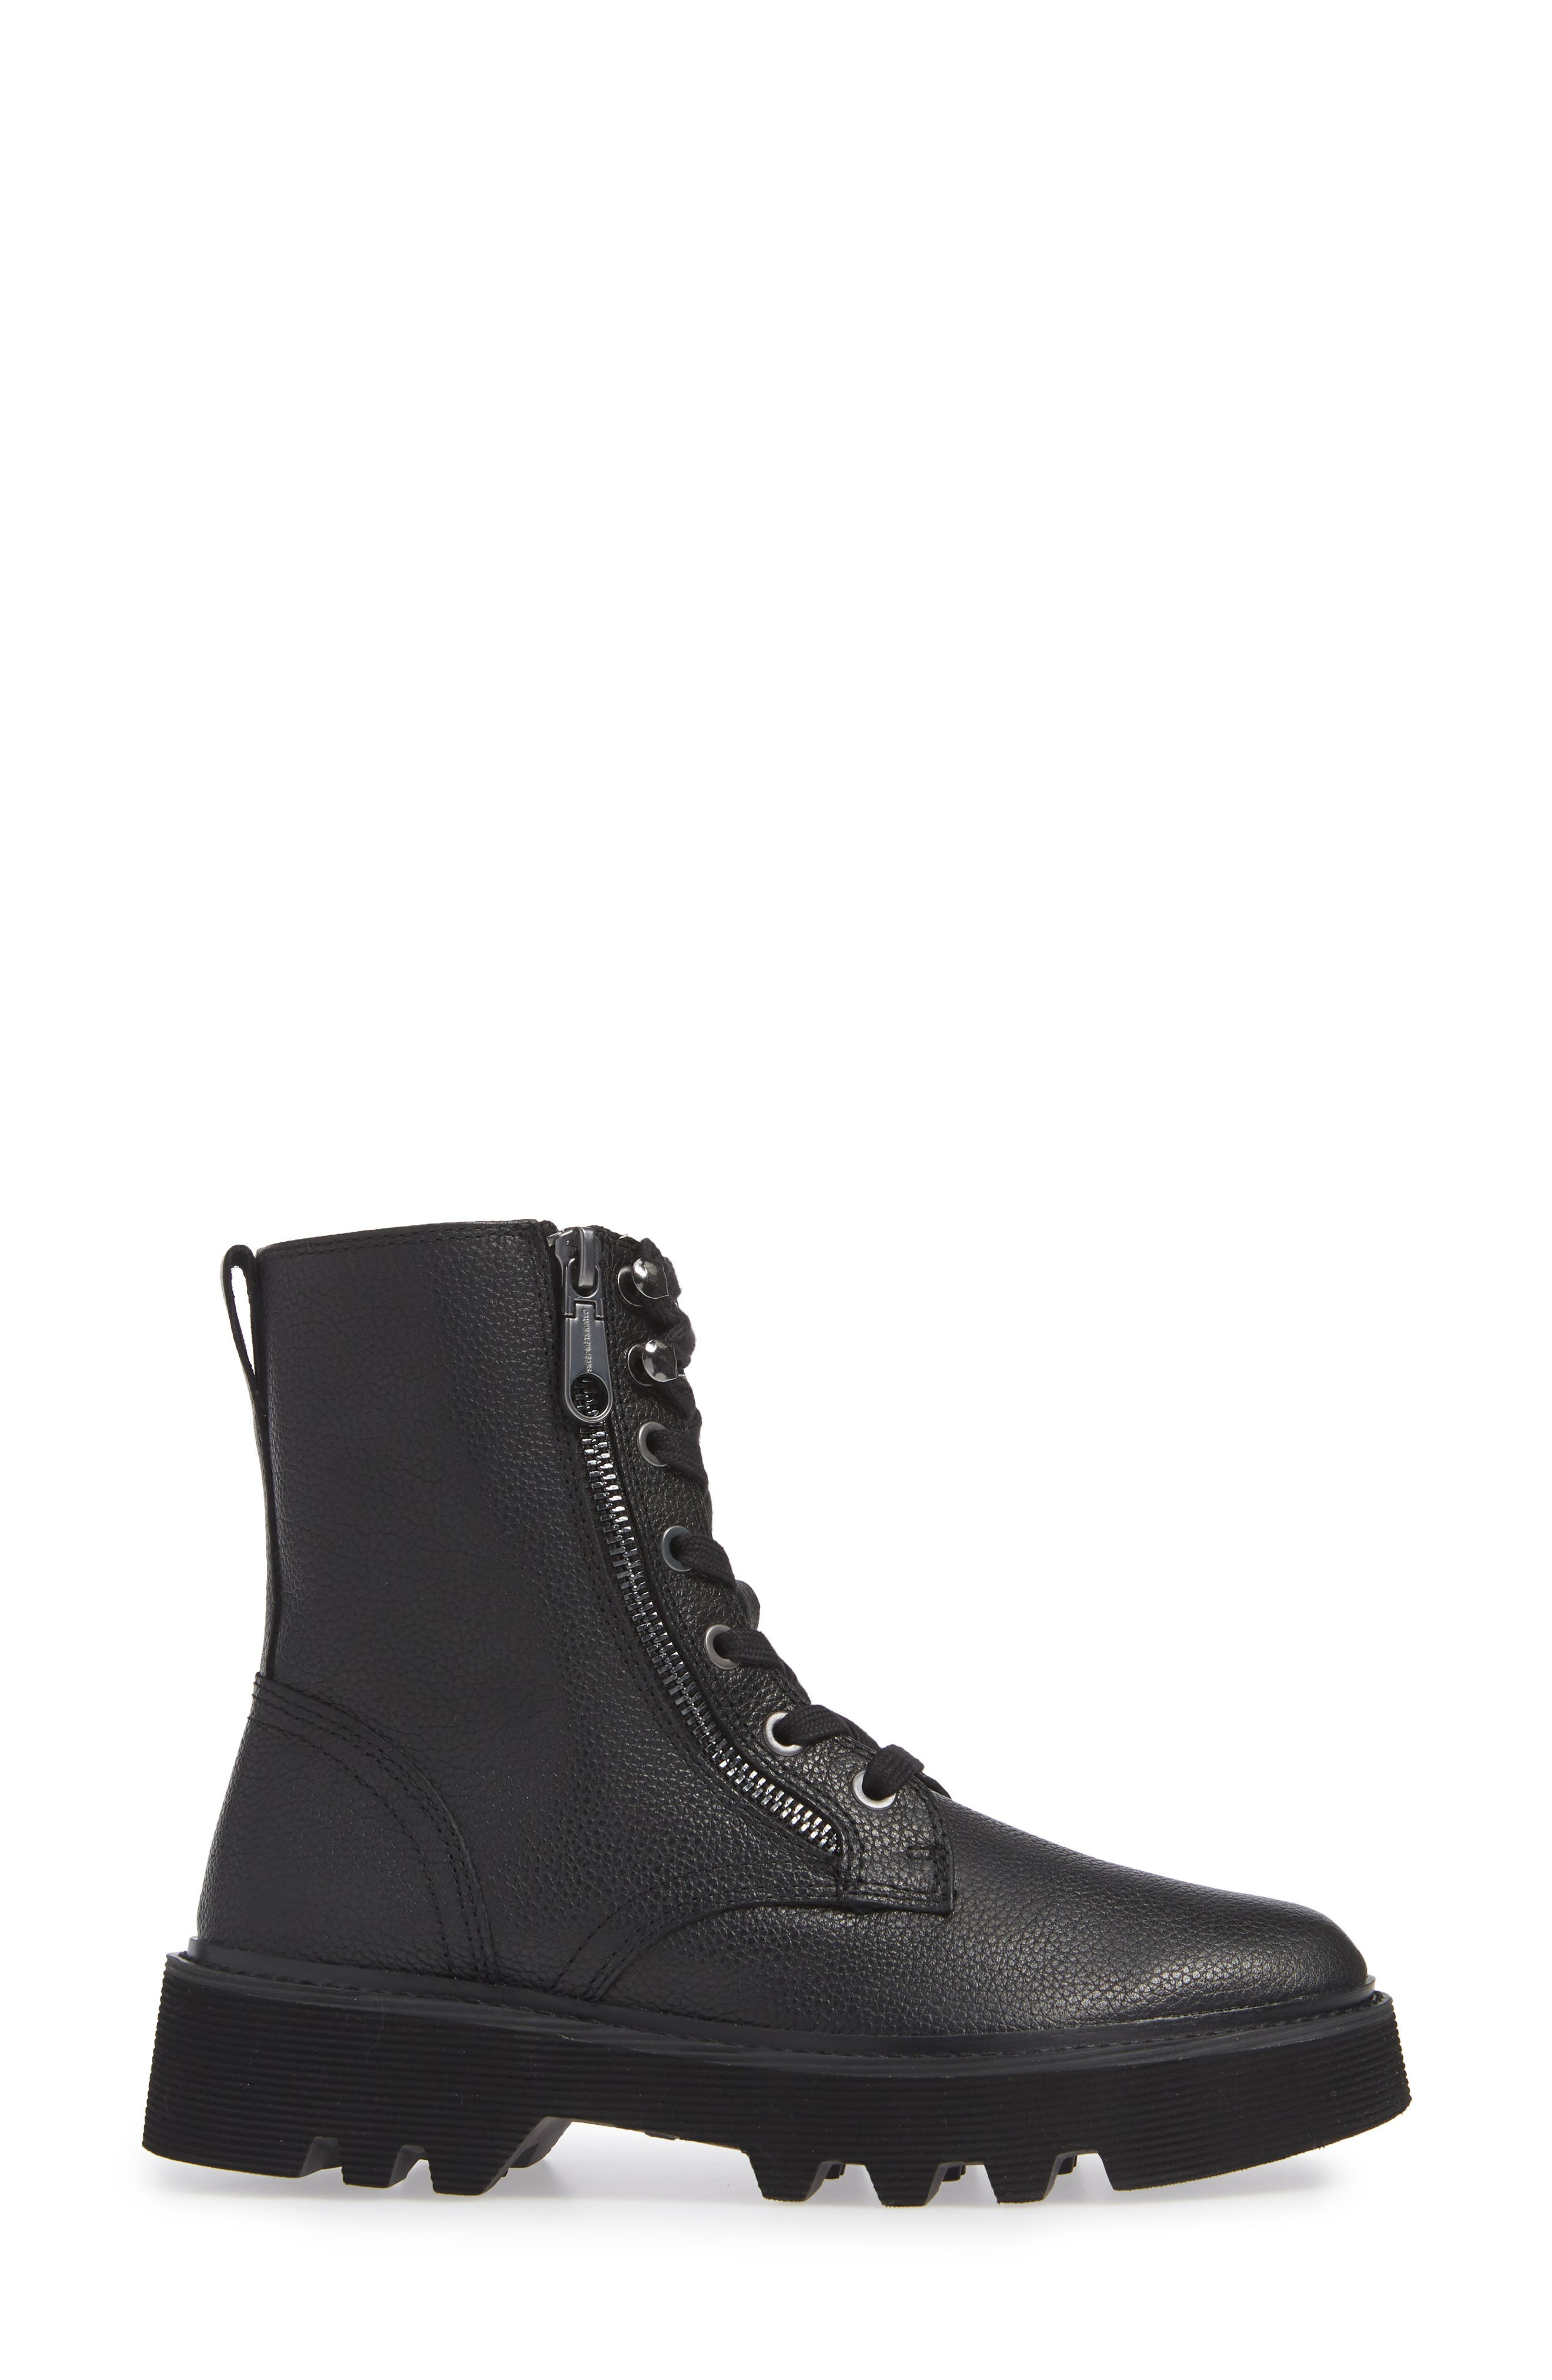 Diahne Combat Boot,                             Alternate thumbnail 3, color,                             BLACK LEATHER